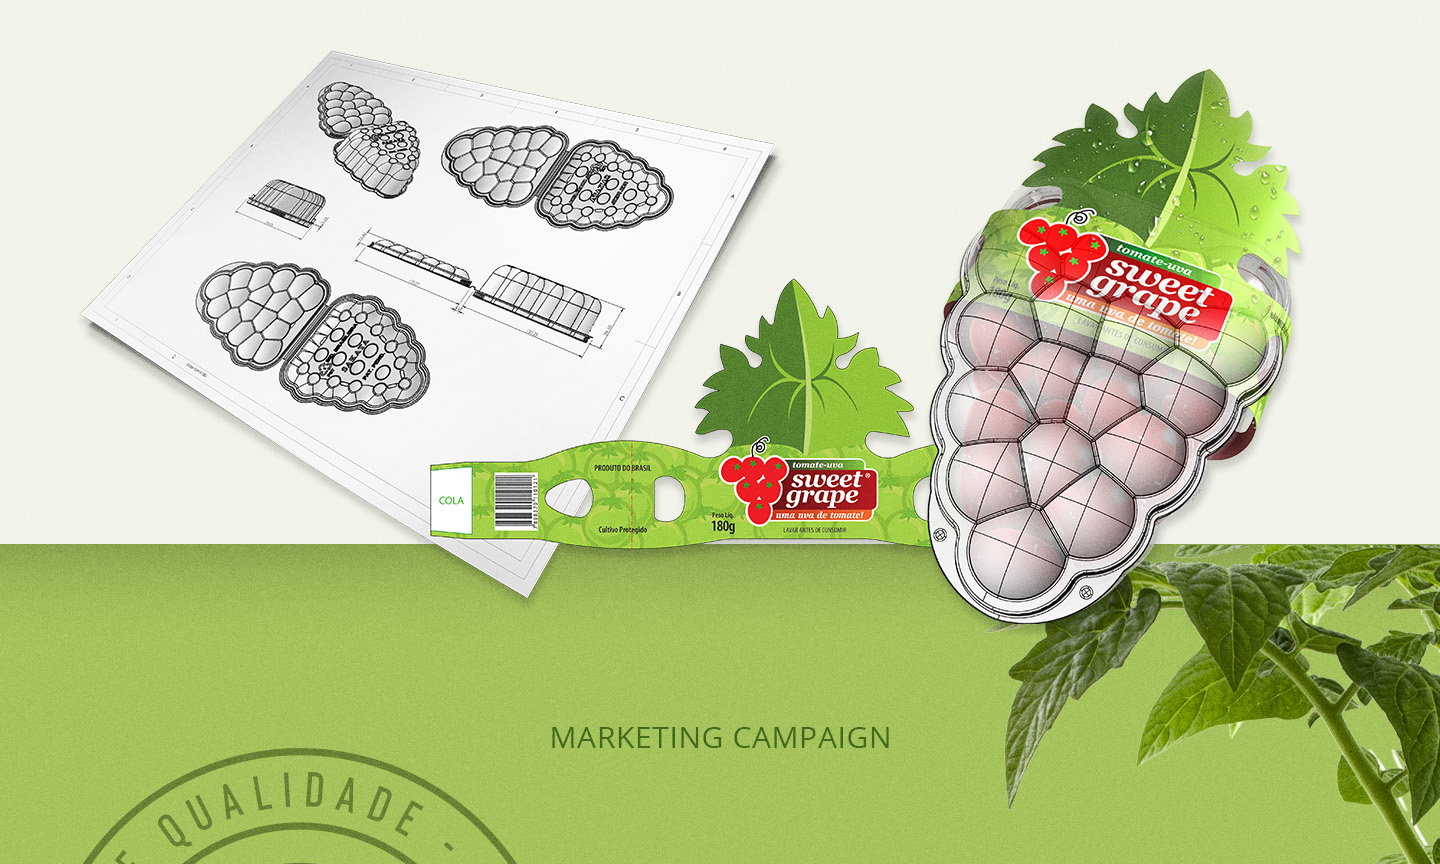 Packaging design for tomatoes